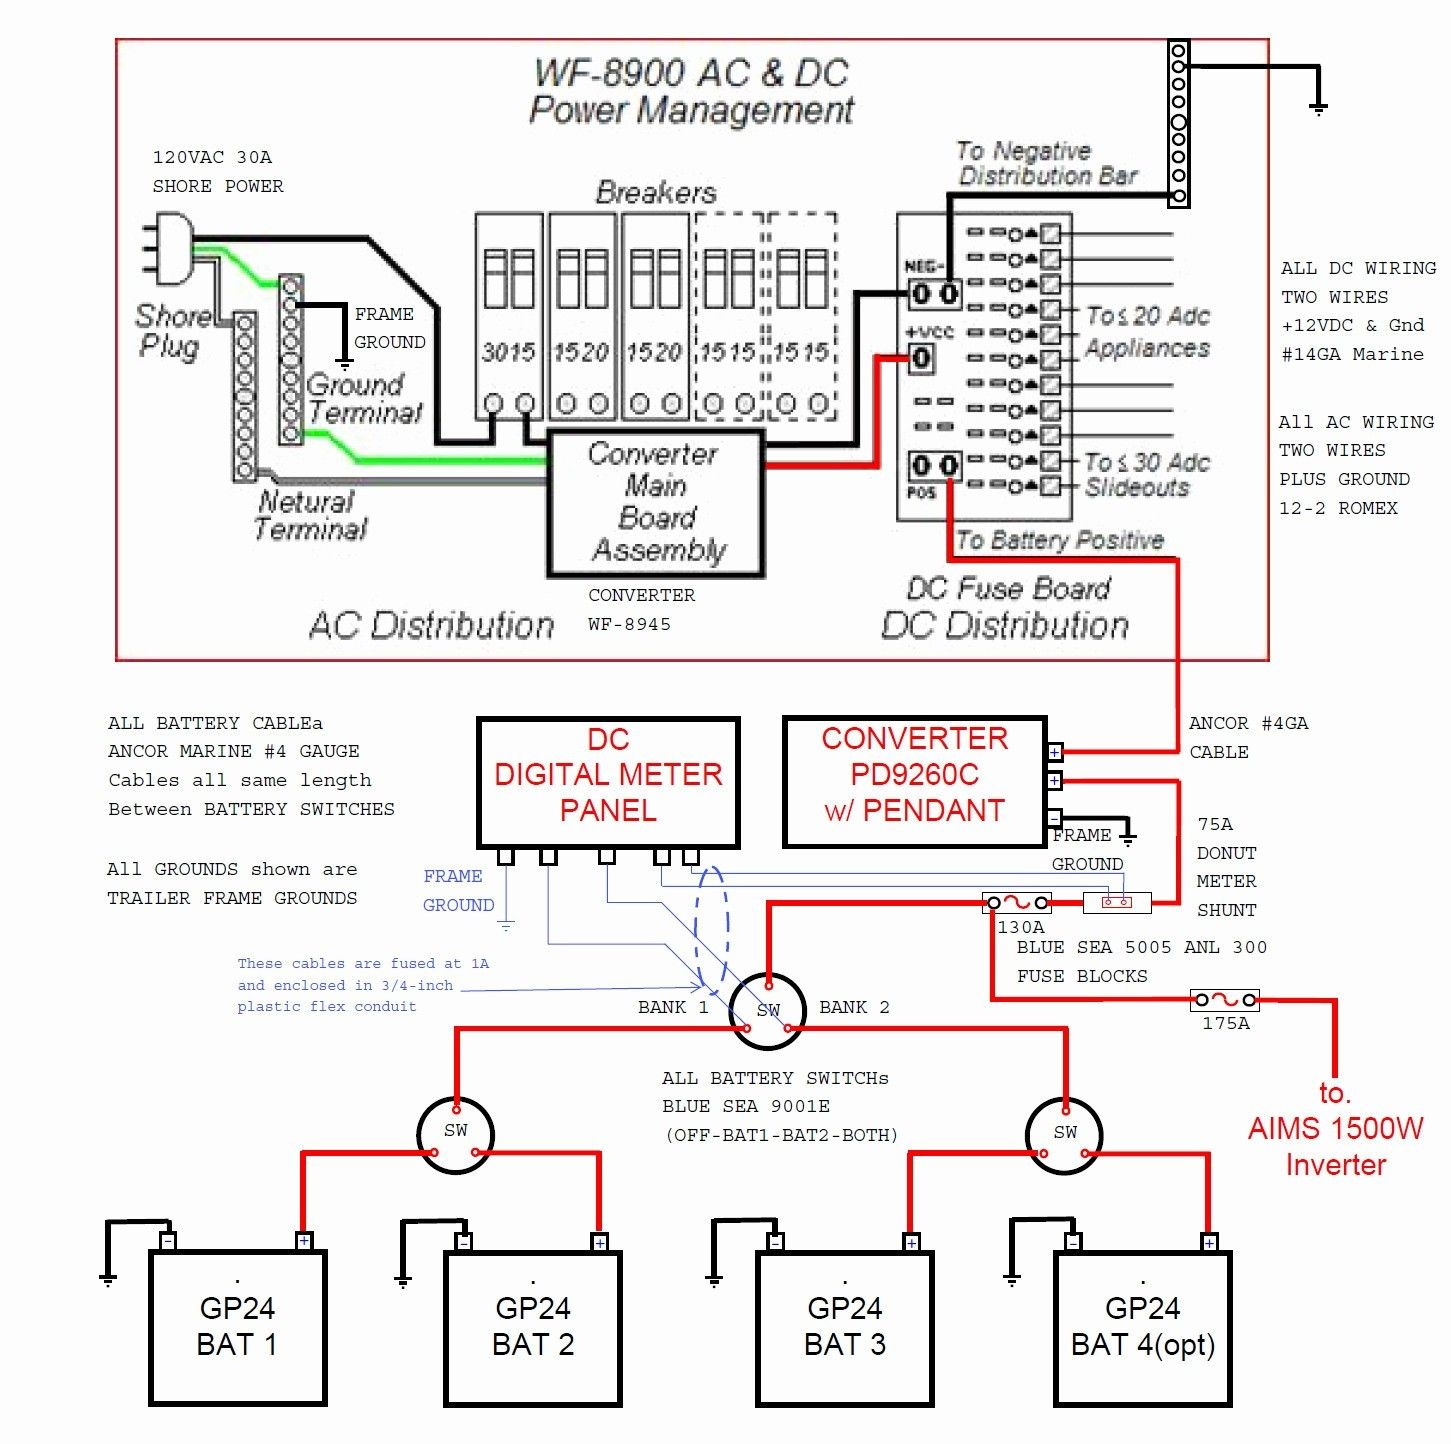 medium resolution of 50a wiring diagram wiring diagram data val 250v schematic wiring